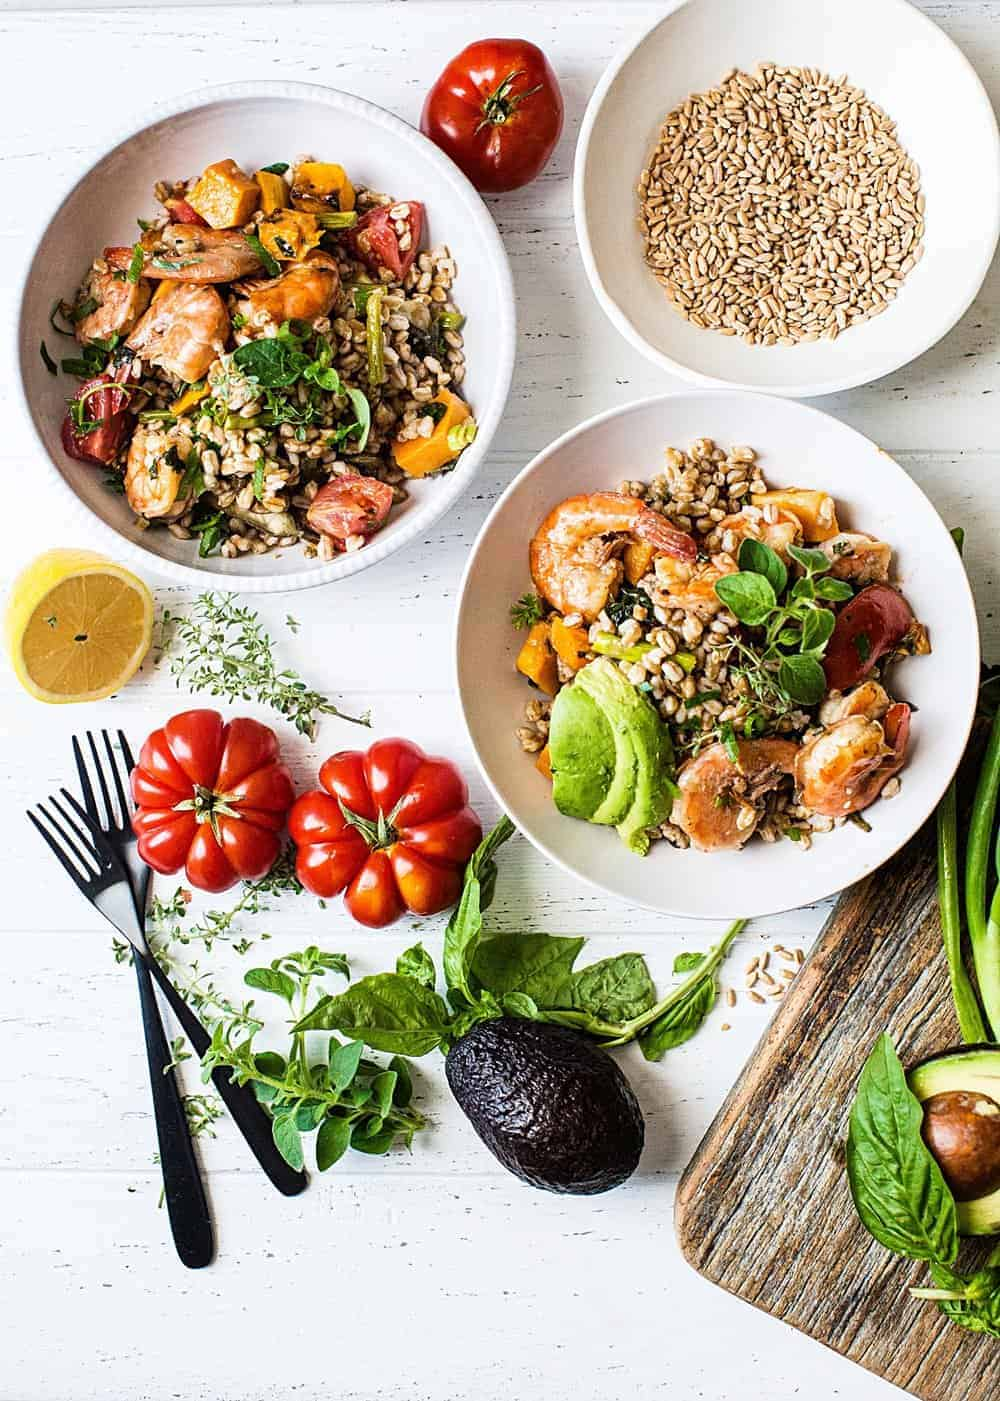 Farro shrimp and butternut squash bowls dialas kitchen sometimes the best recipes happen when you gather ingredients that you already have on hand when i made dinner saturday night little did i know that this forumfinder Choice Image